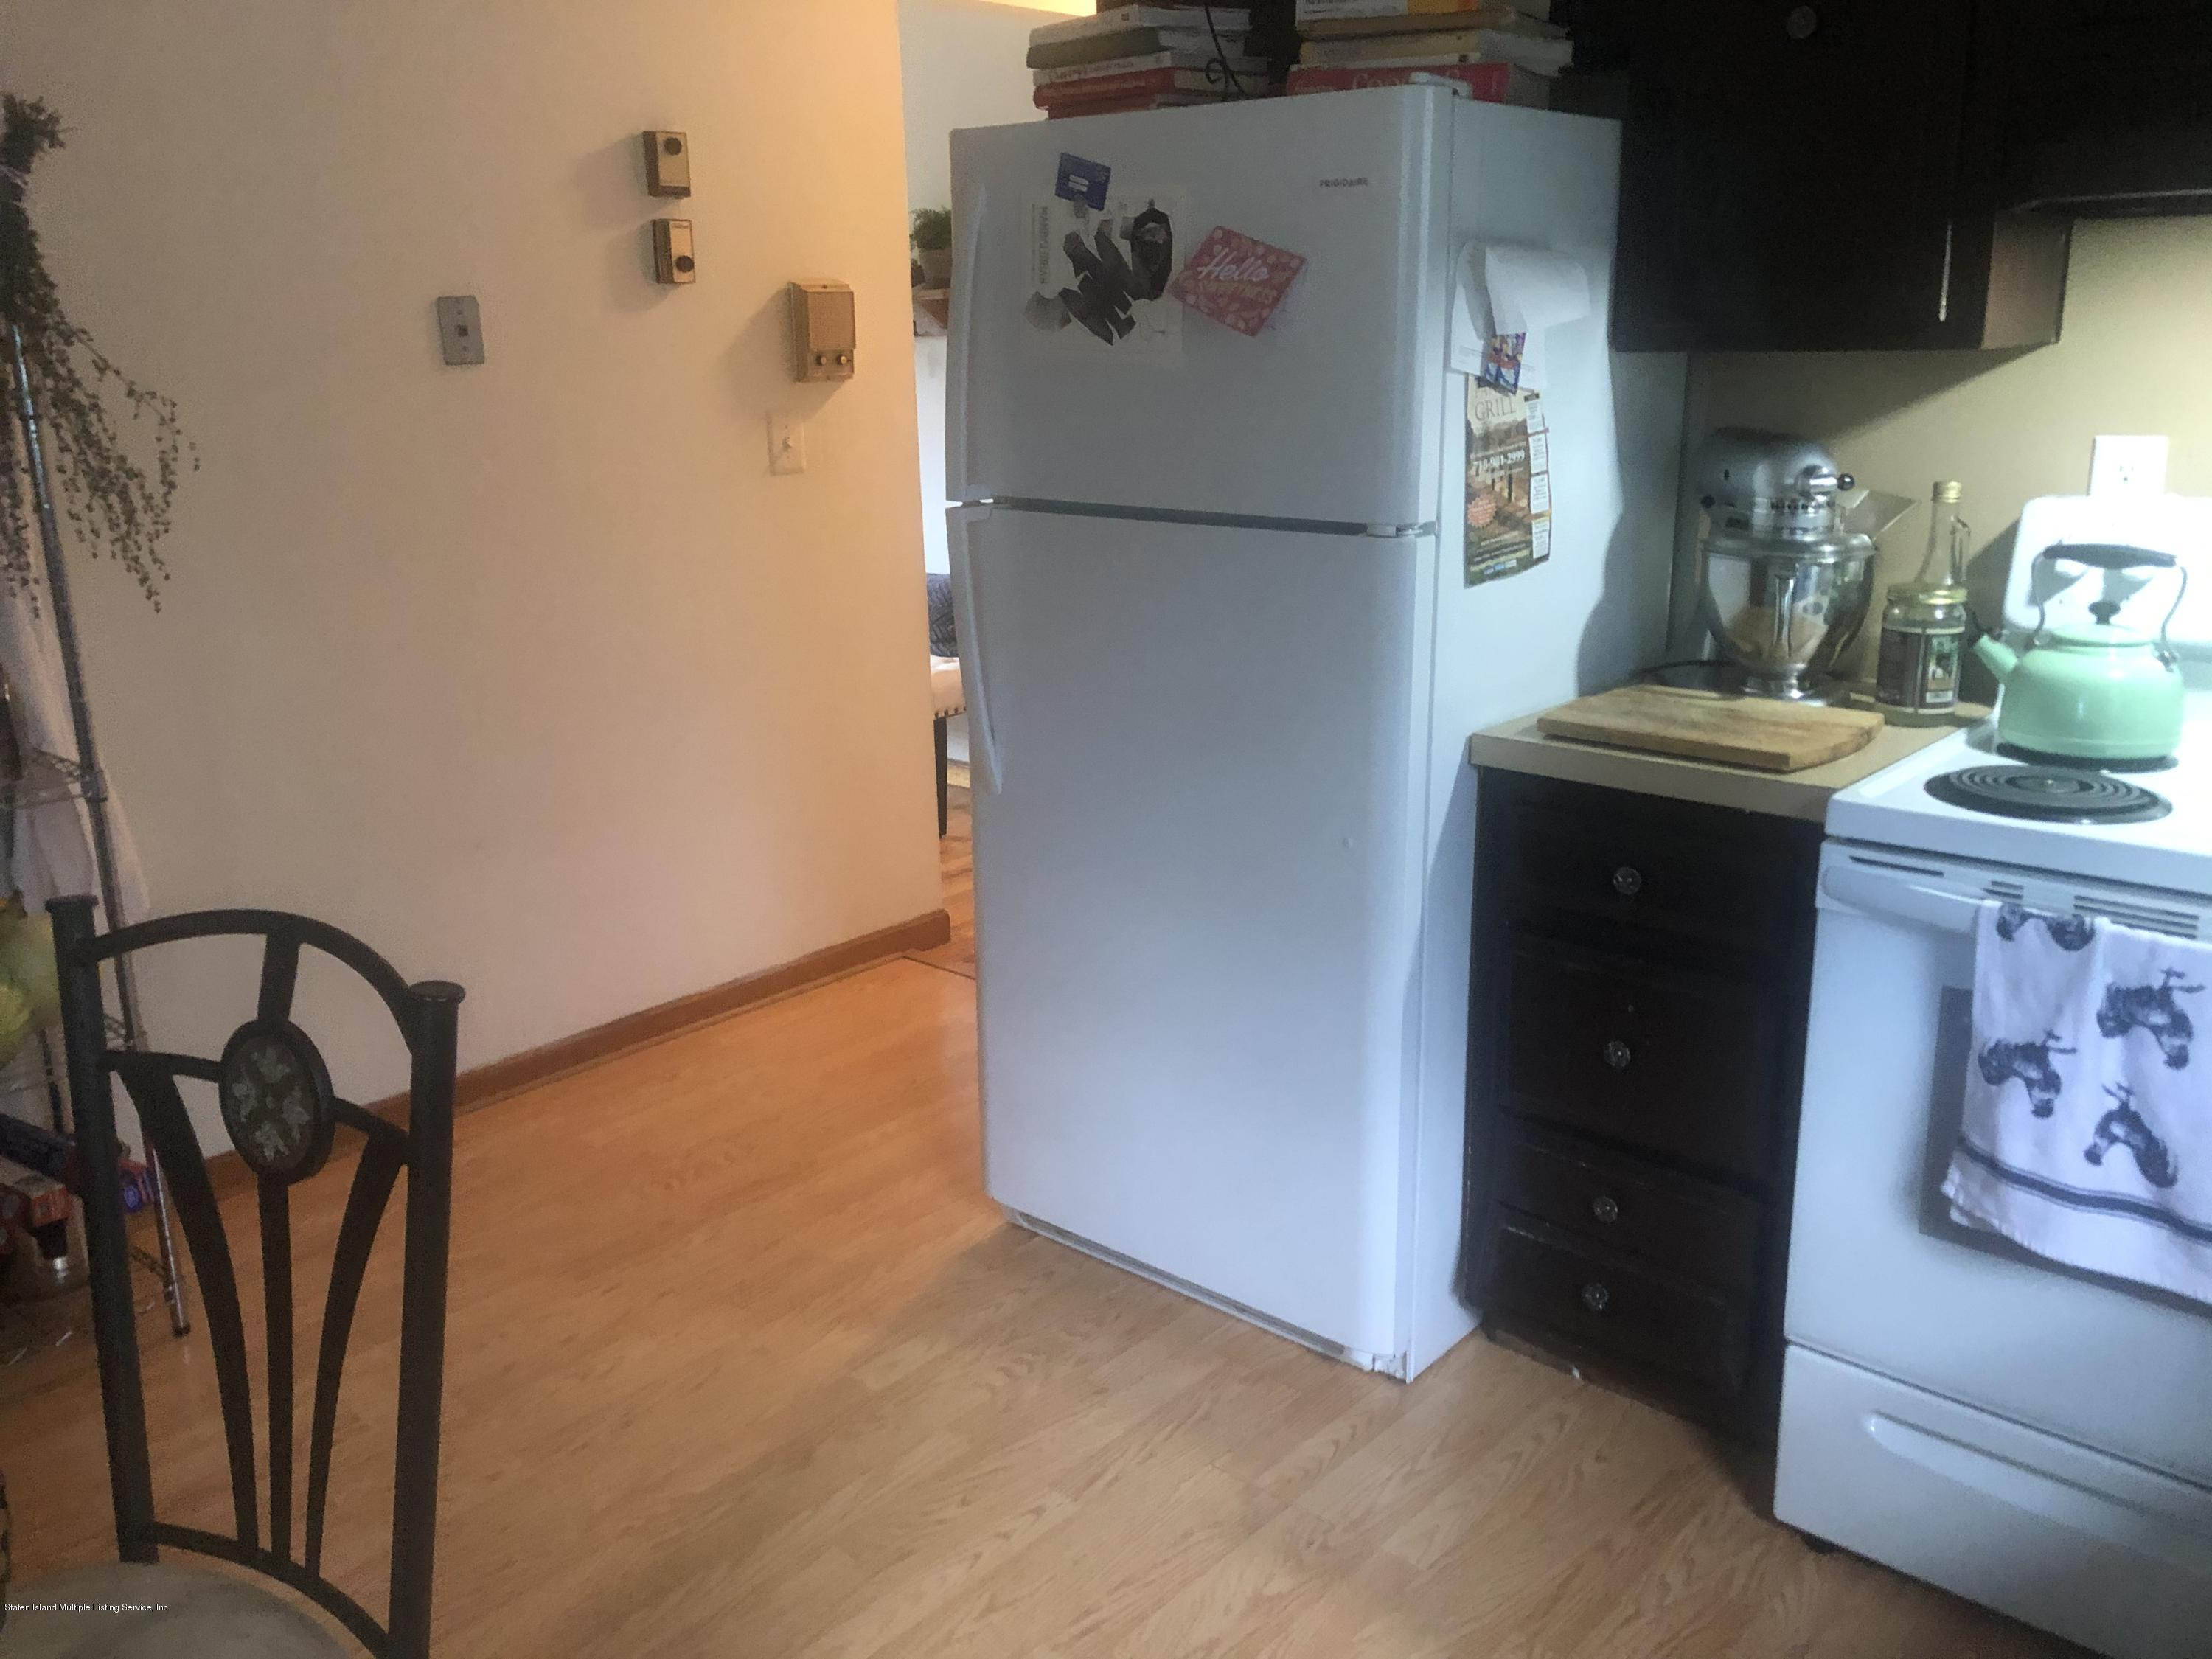 Two Family - Semi-Attached 4 University Place  Staten Island, NY 10301, MLS-1130572-6